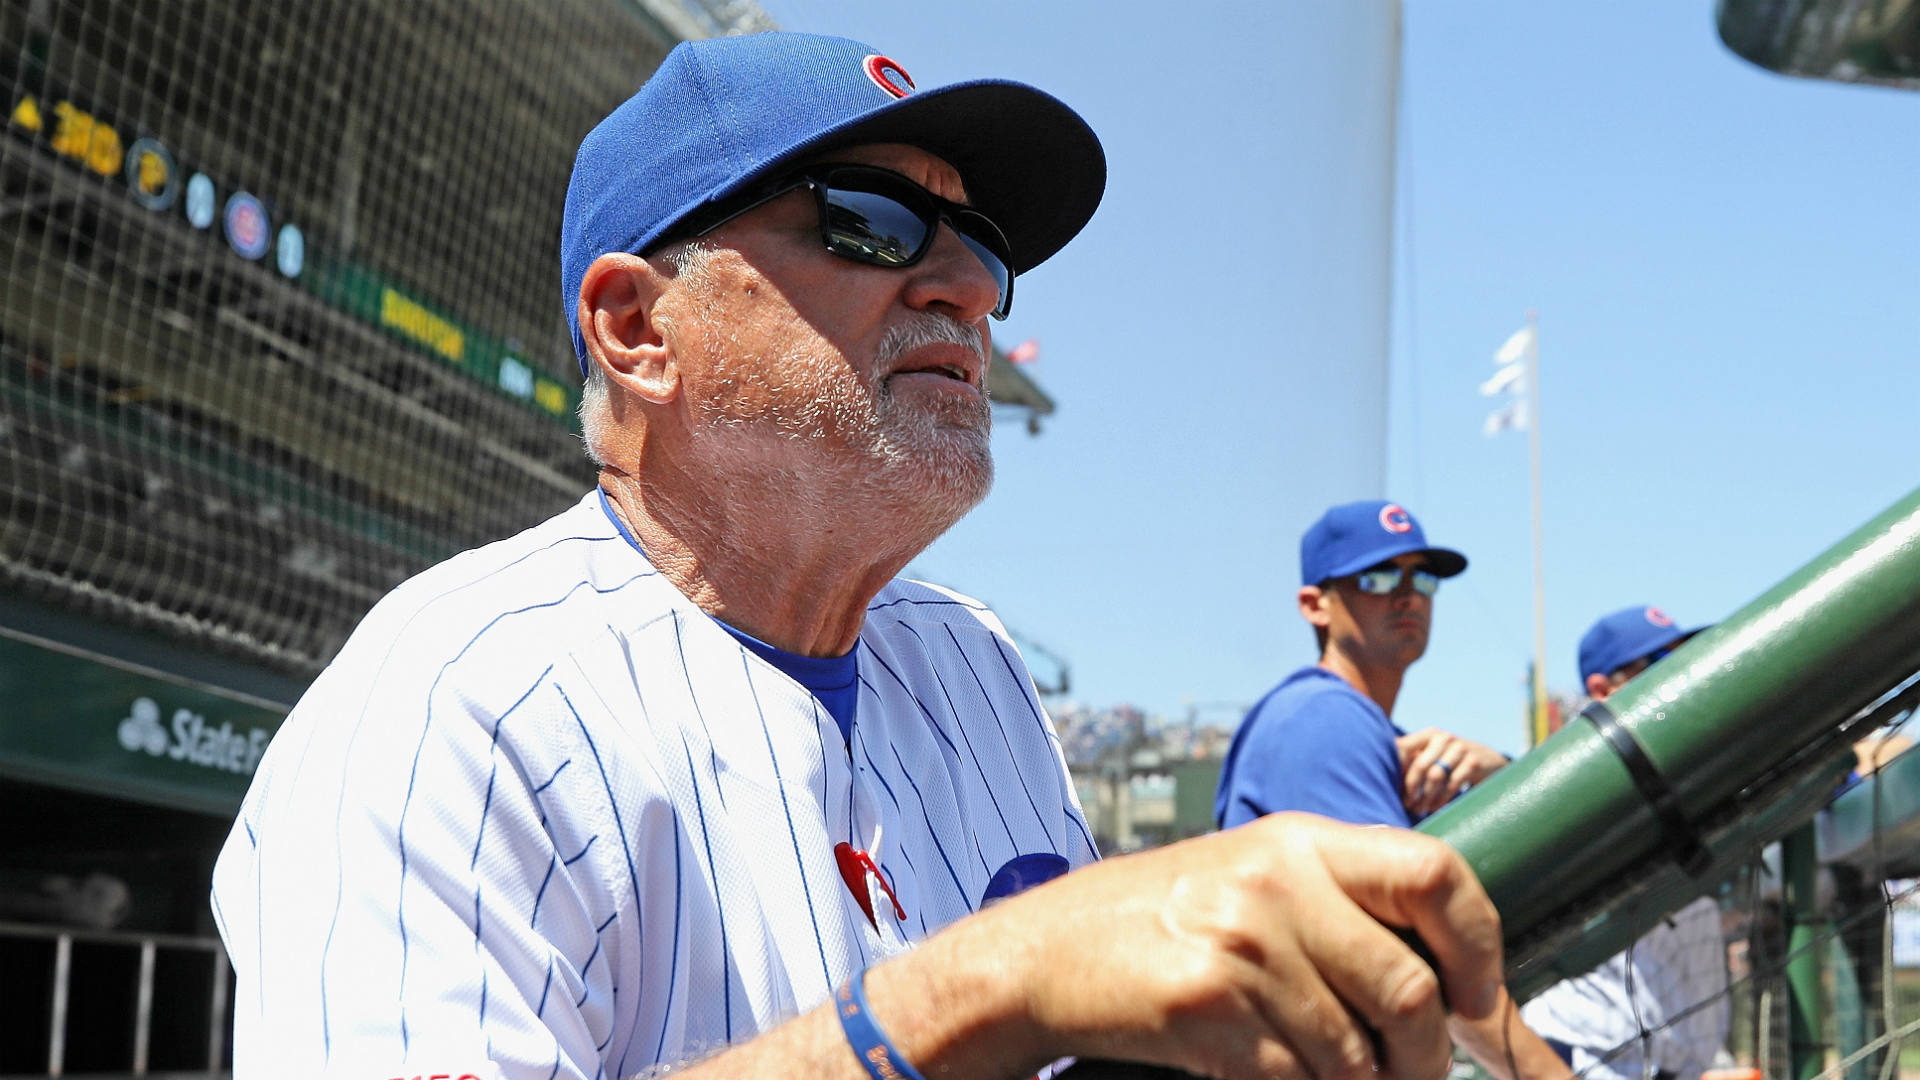 Angels present a unique challenge for new manager Joe Maddon